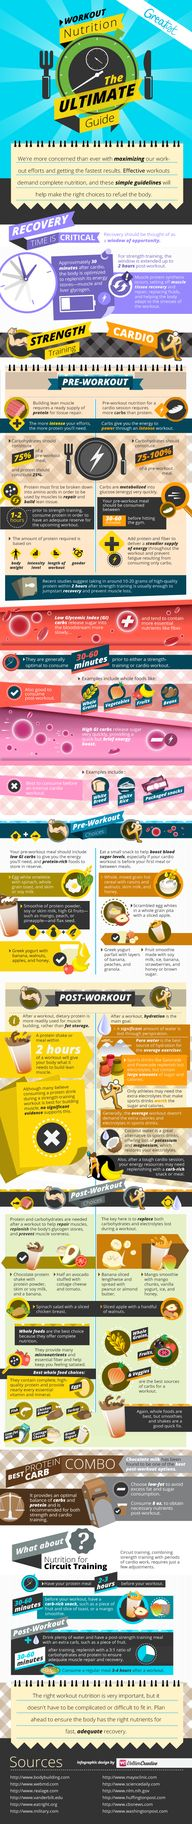 Workout Nutrition, a...